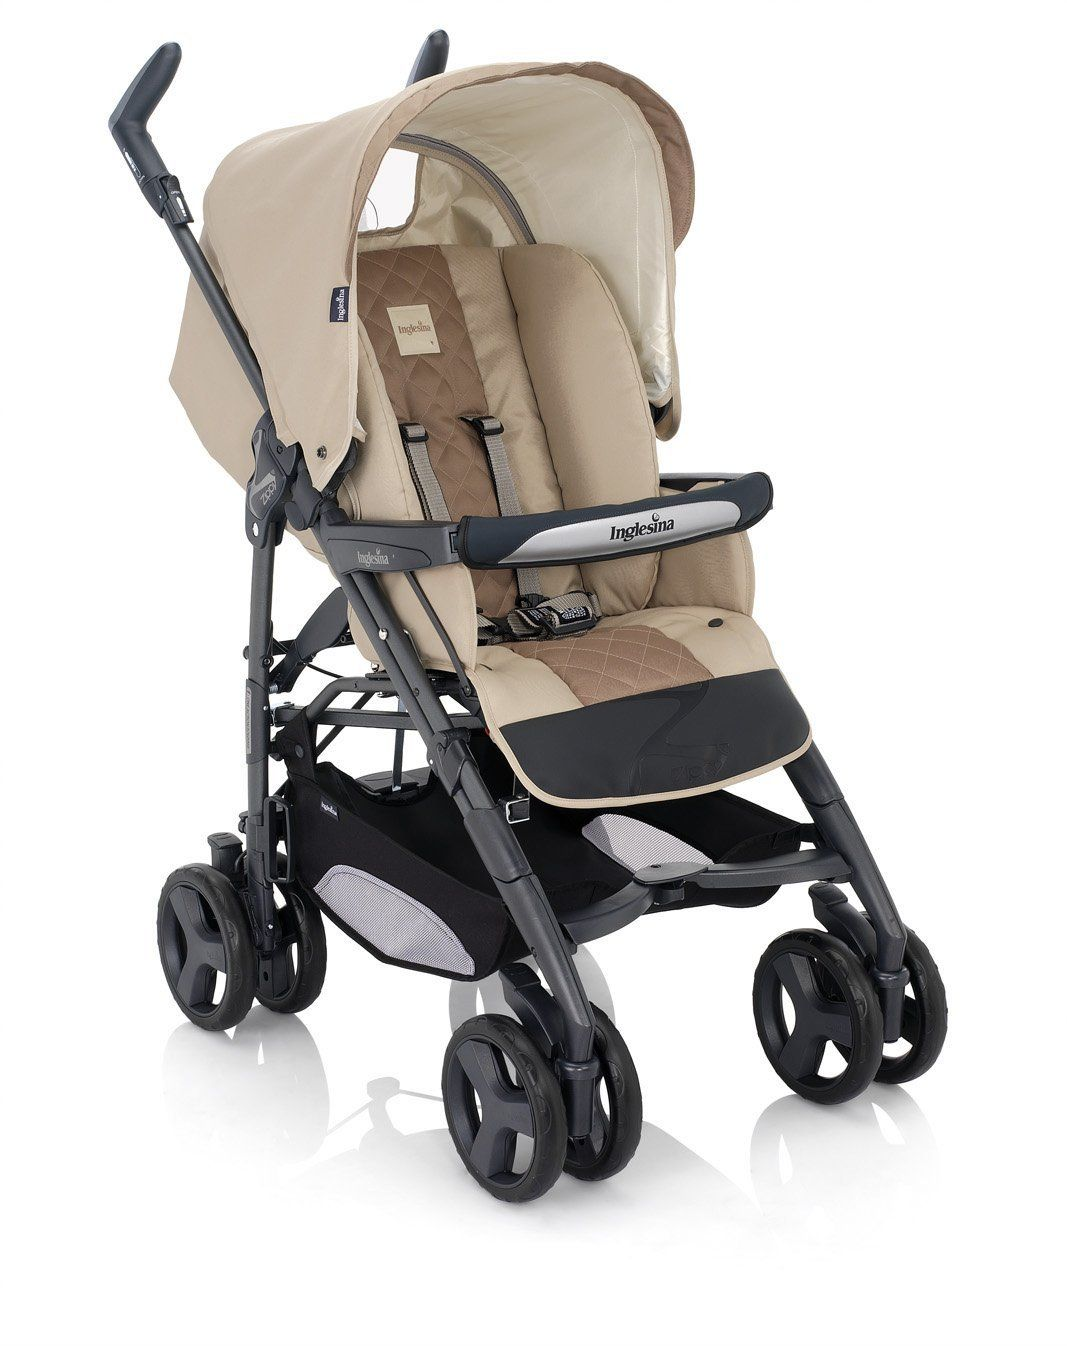 Inglesina Zippy Stroller With Rain Cover (2010) Ecru